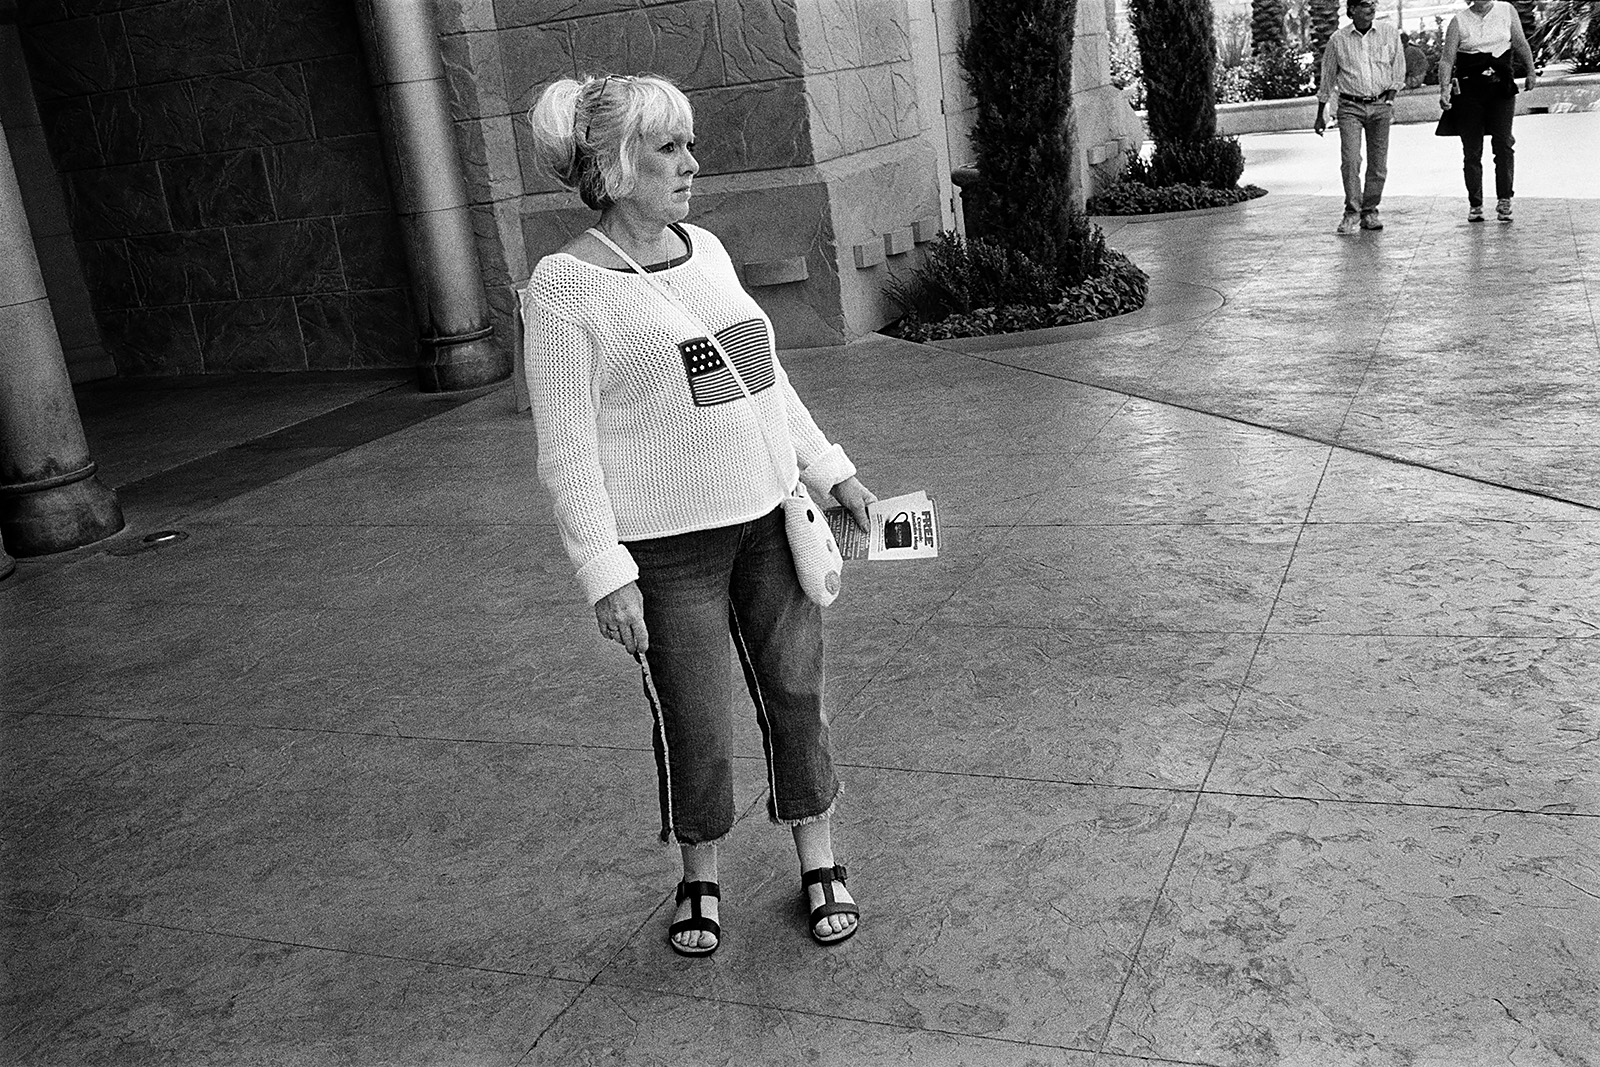 Outside Aladdin Casino, Las Vegas, 2003